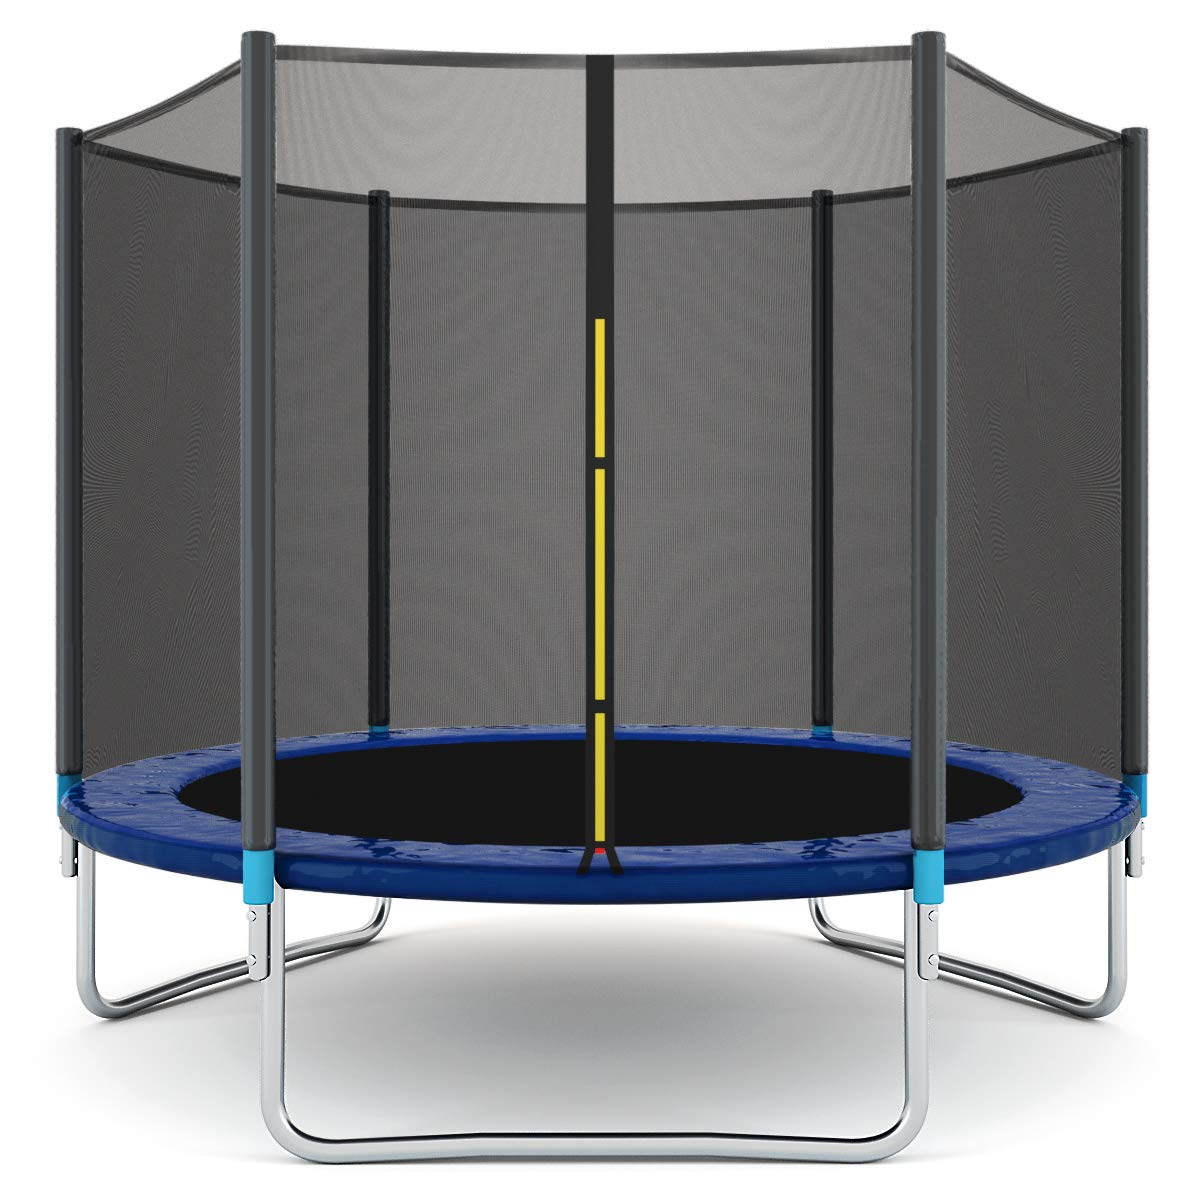 Giantex Trampoline Combo Bounce Jump Safety Enclosure Net W/Spring Pad Ladder (8 FT) by Giantex (Image #1)